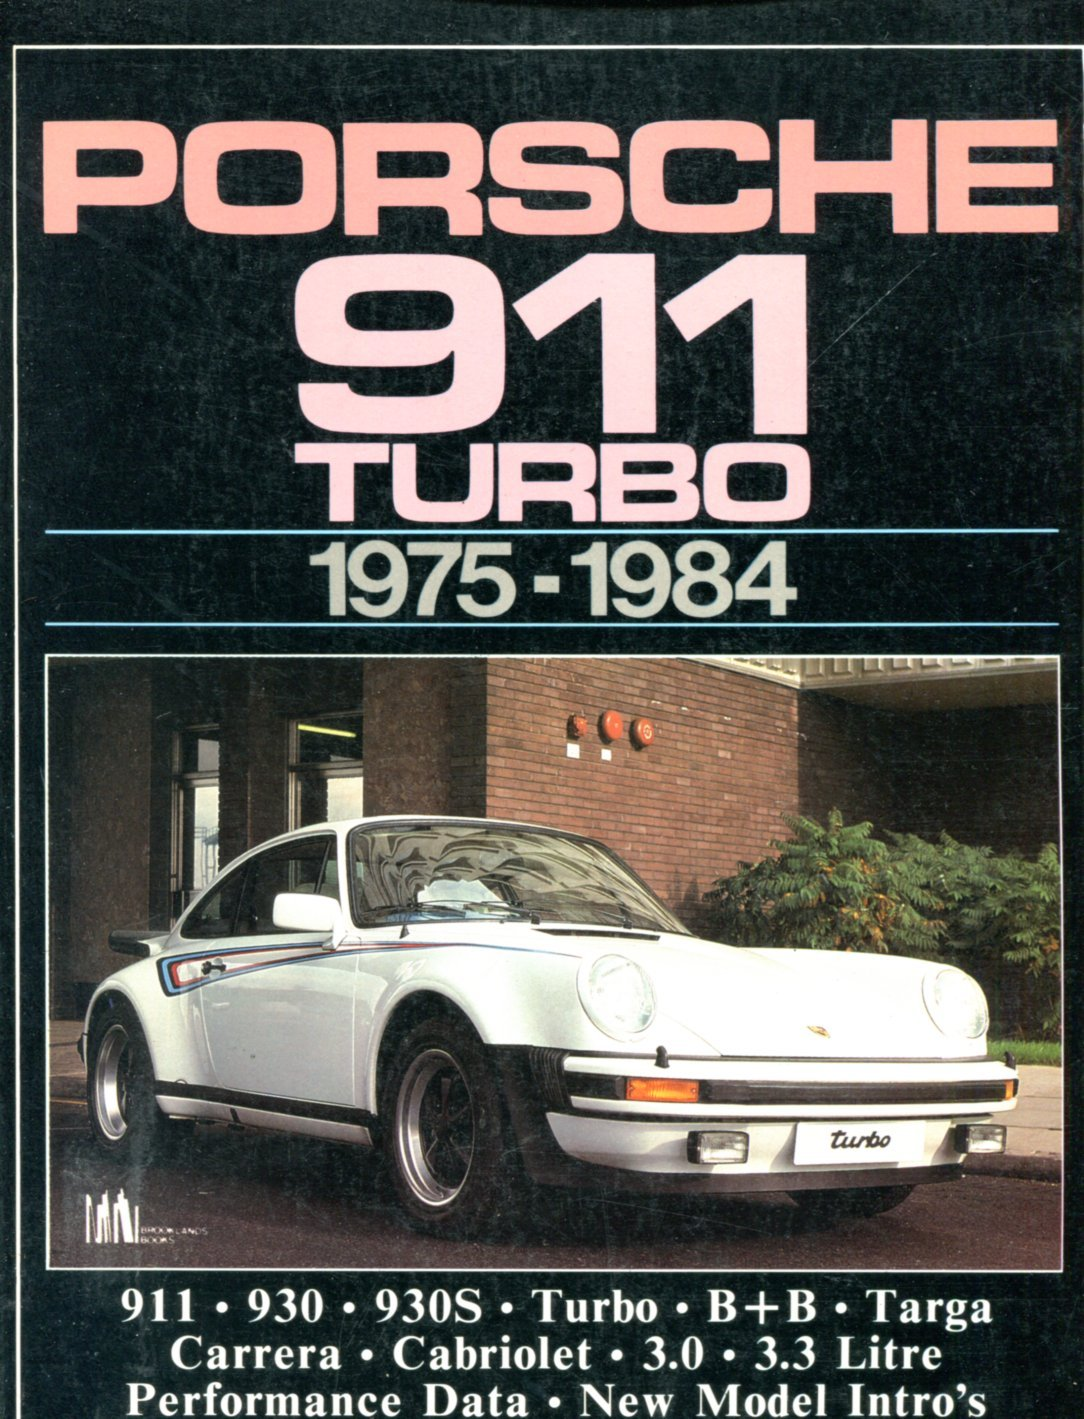 Porsche 911 Turbo, 1975-84 Brooklands Books Road Tests Series: Amazon.es: R. M. Clarke: Libros en idiomas extranjeros